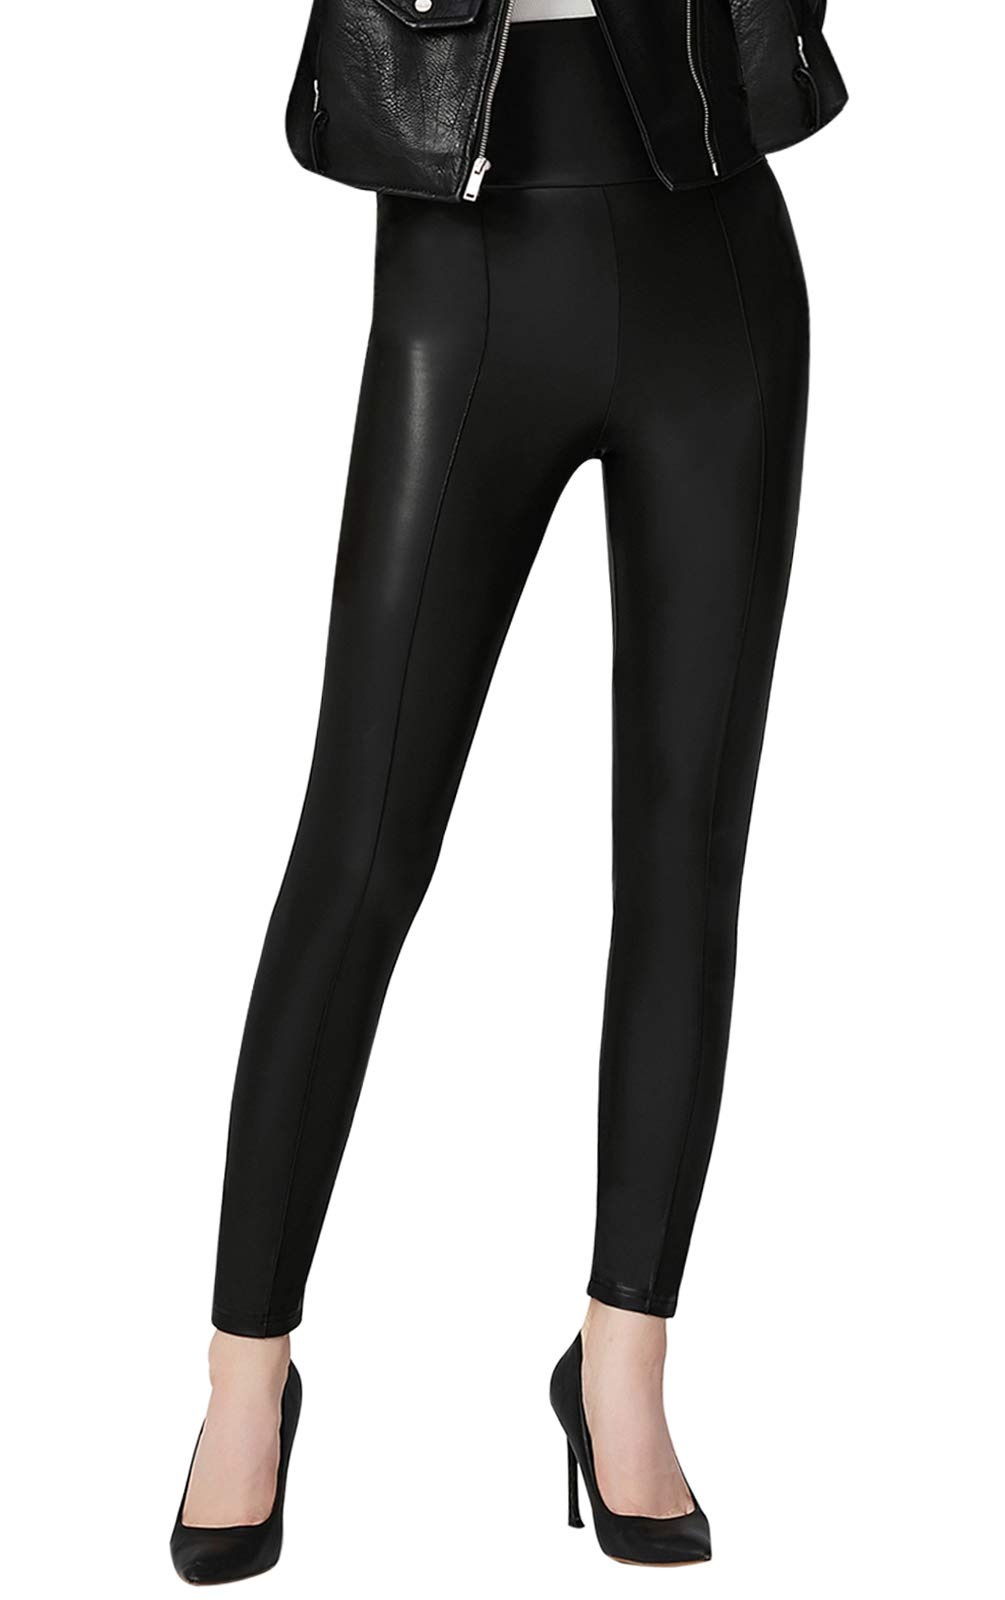 Everbellus High Waisted Faux Leather Leggings for Women Sexy Black Leather Pants X-Large by Everbellus (Image #5)